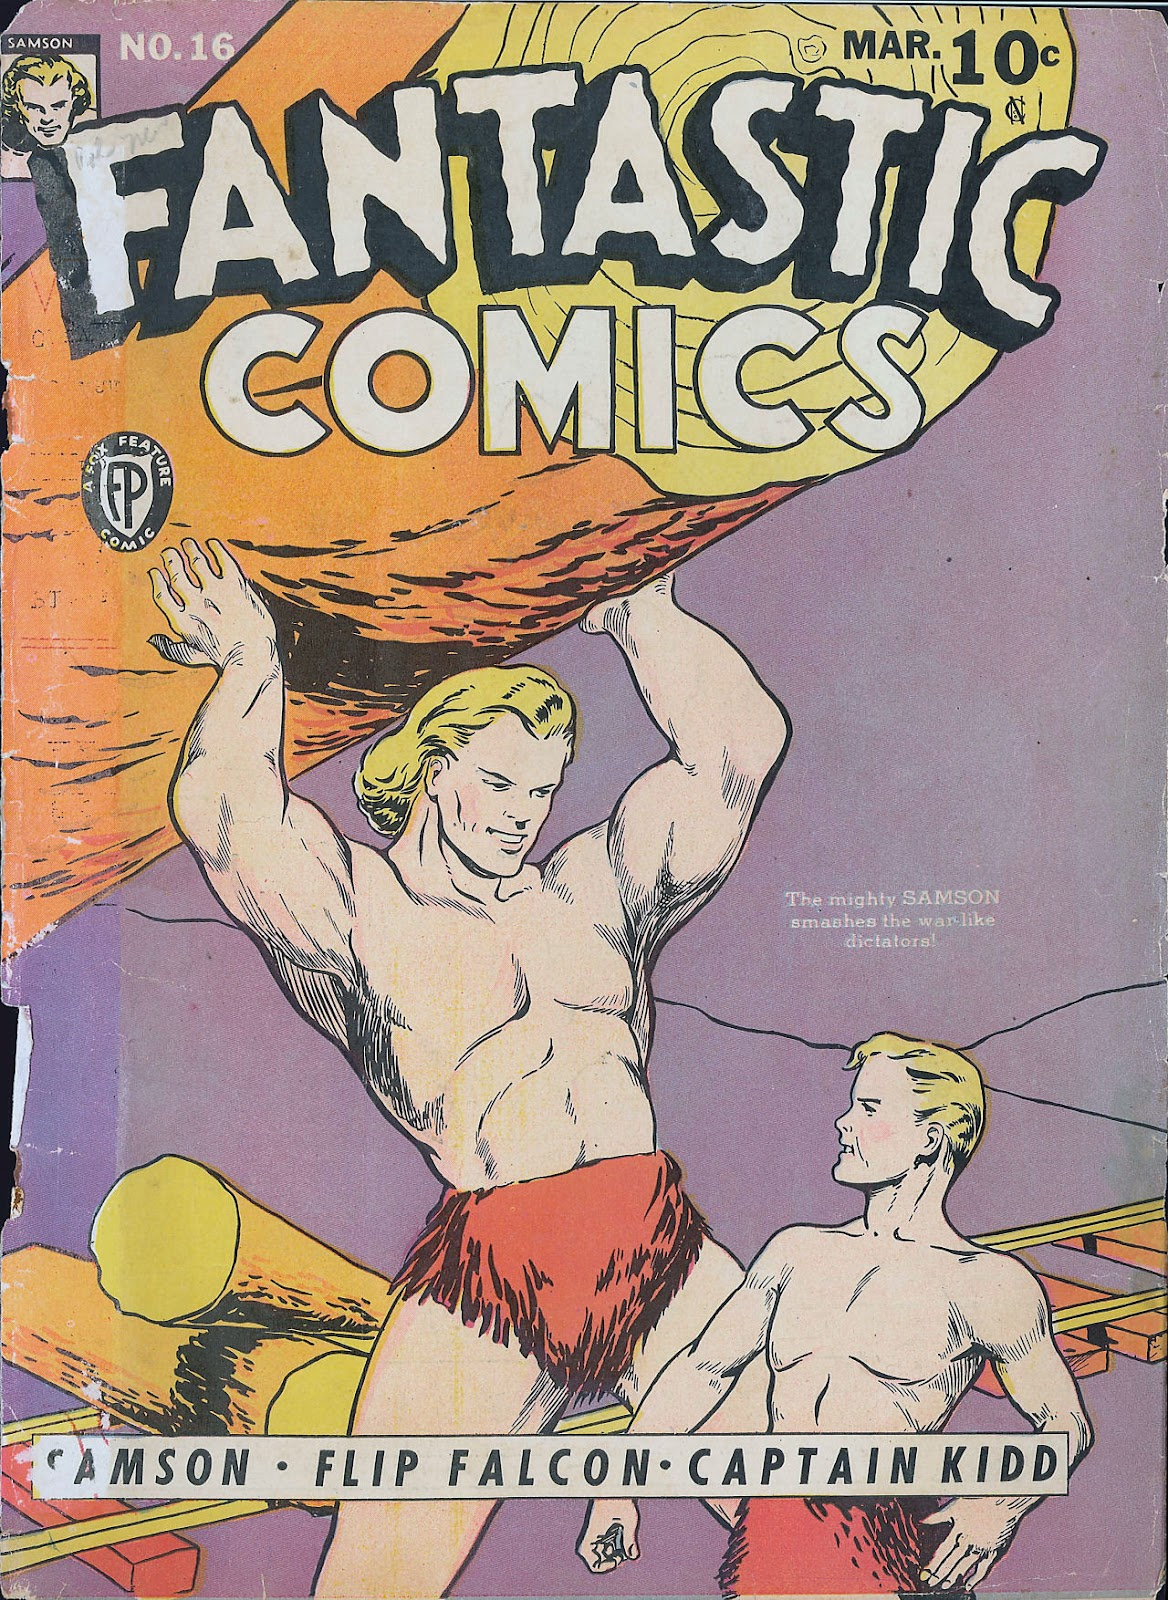 Read online Fantastic Comics comic -  Issue #16 - 1